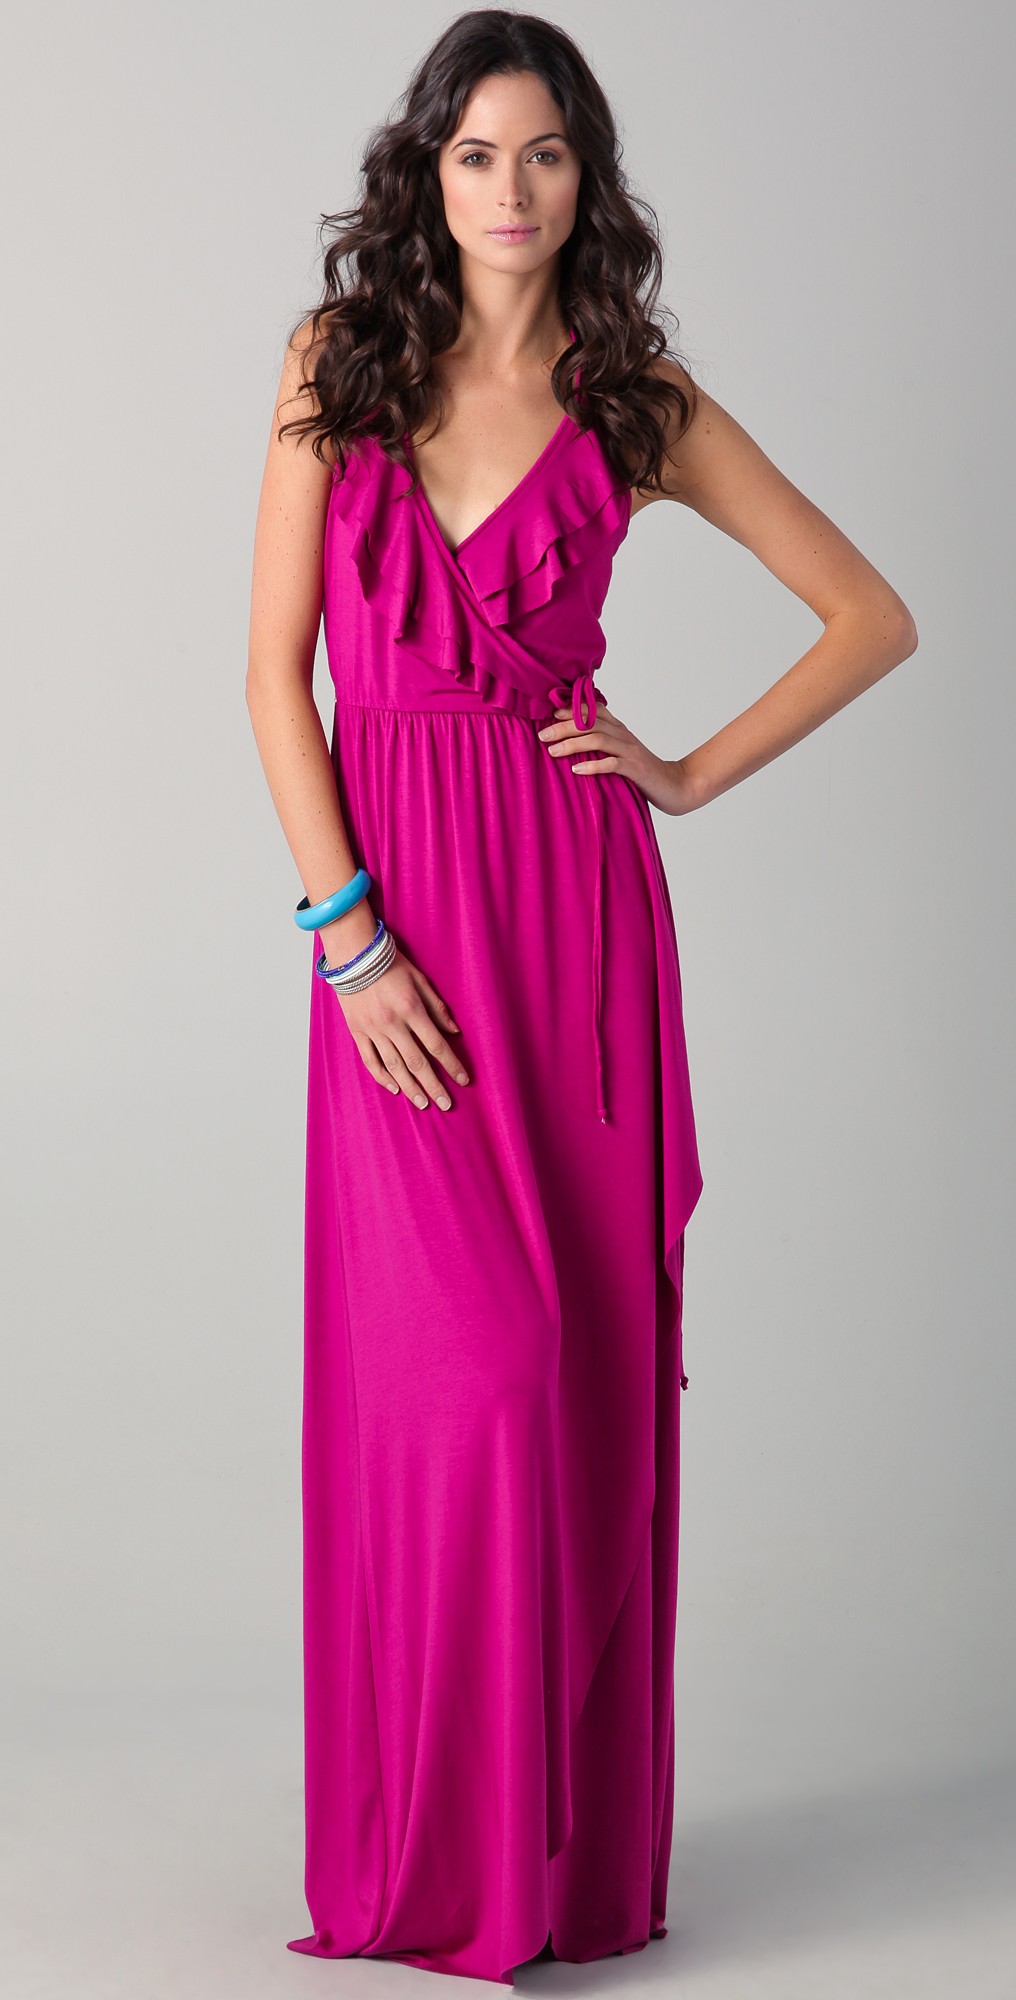 Shop All the Wrap Dresses on sale in your size today from hundreds of stores -- all in one place.